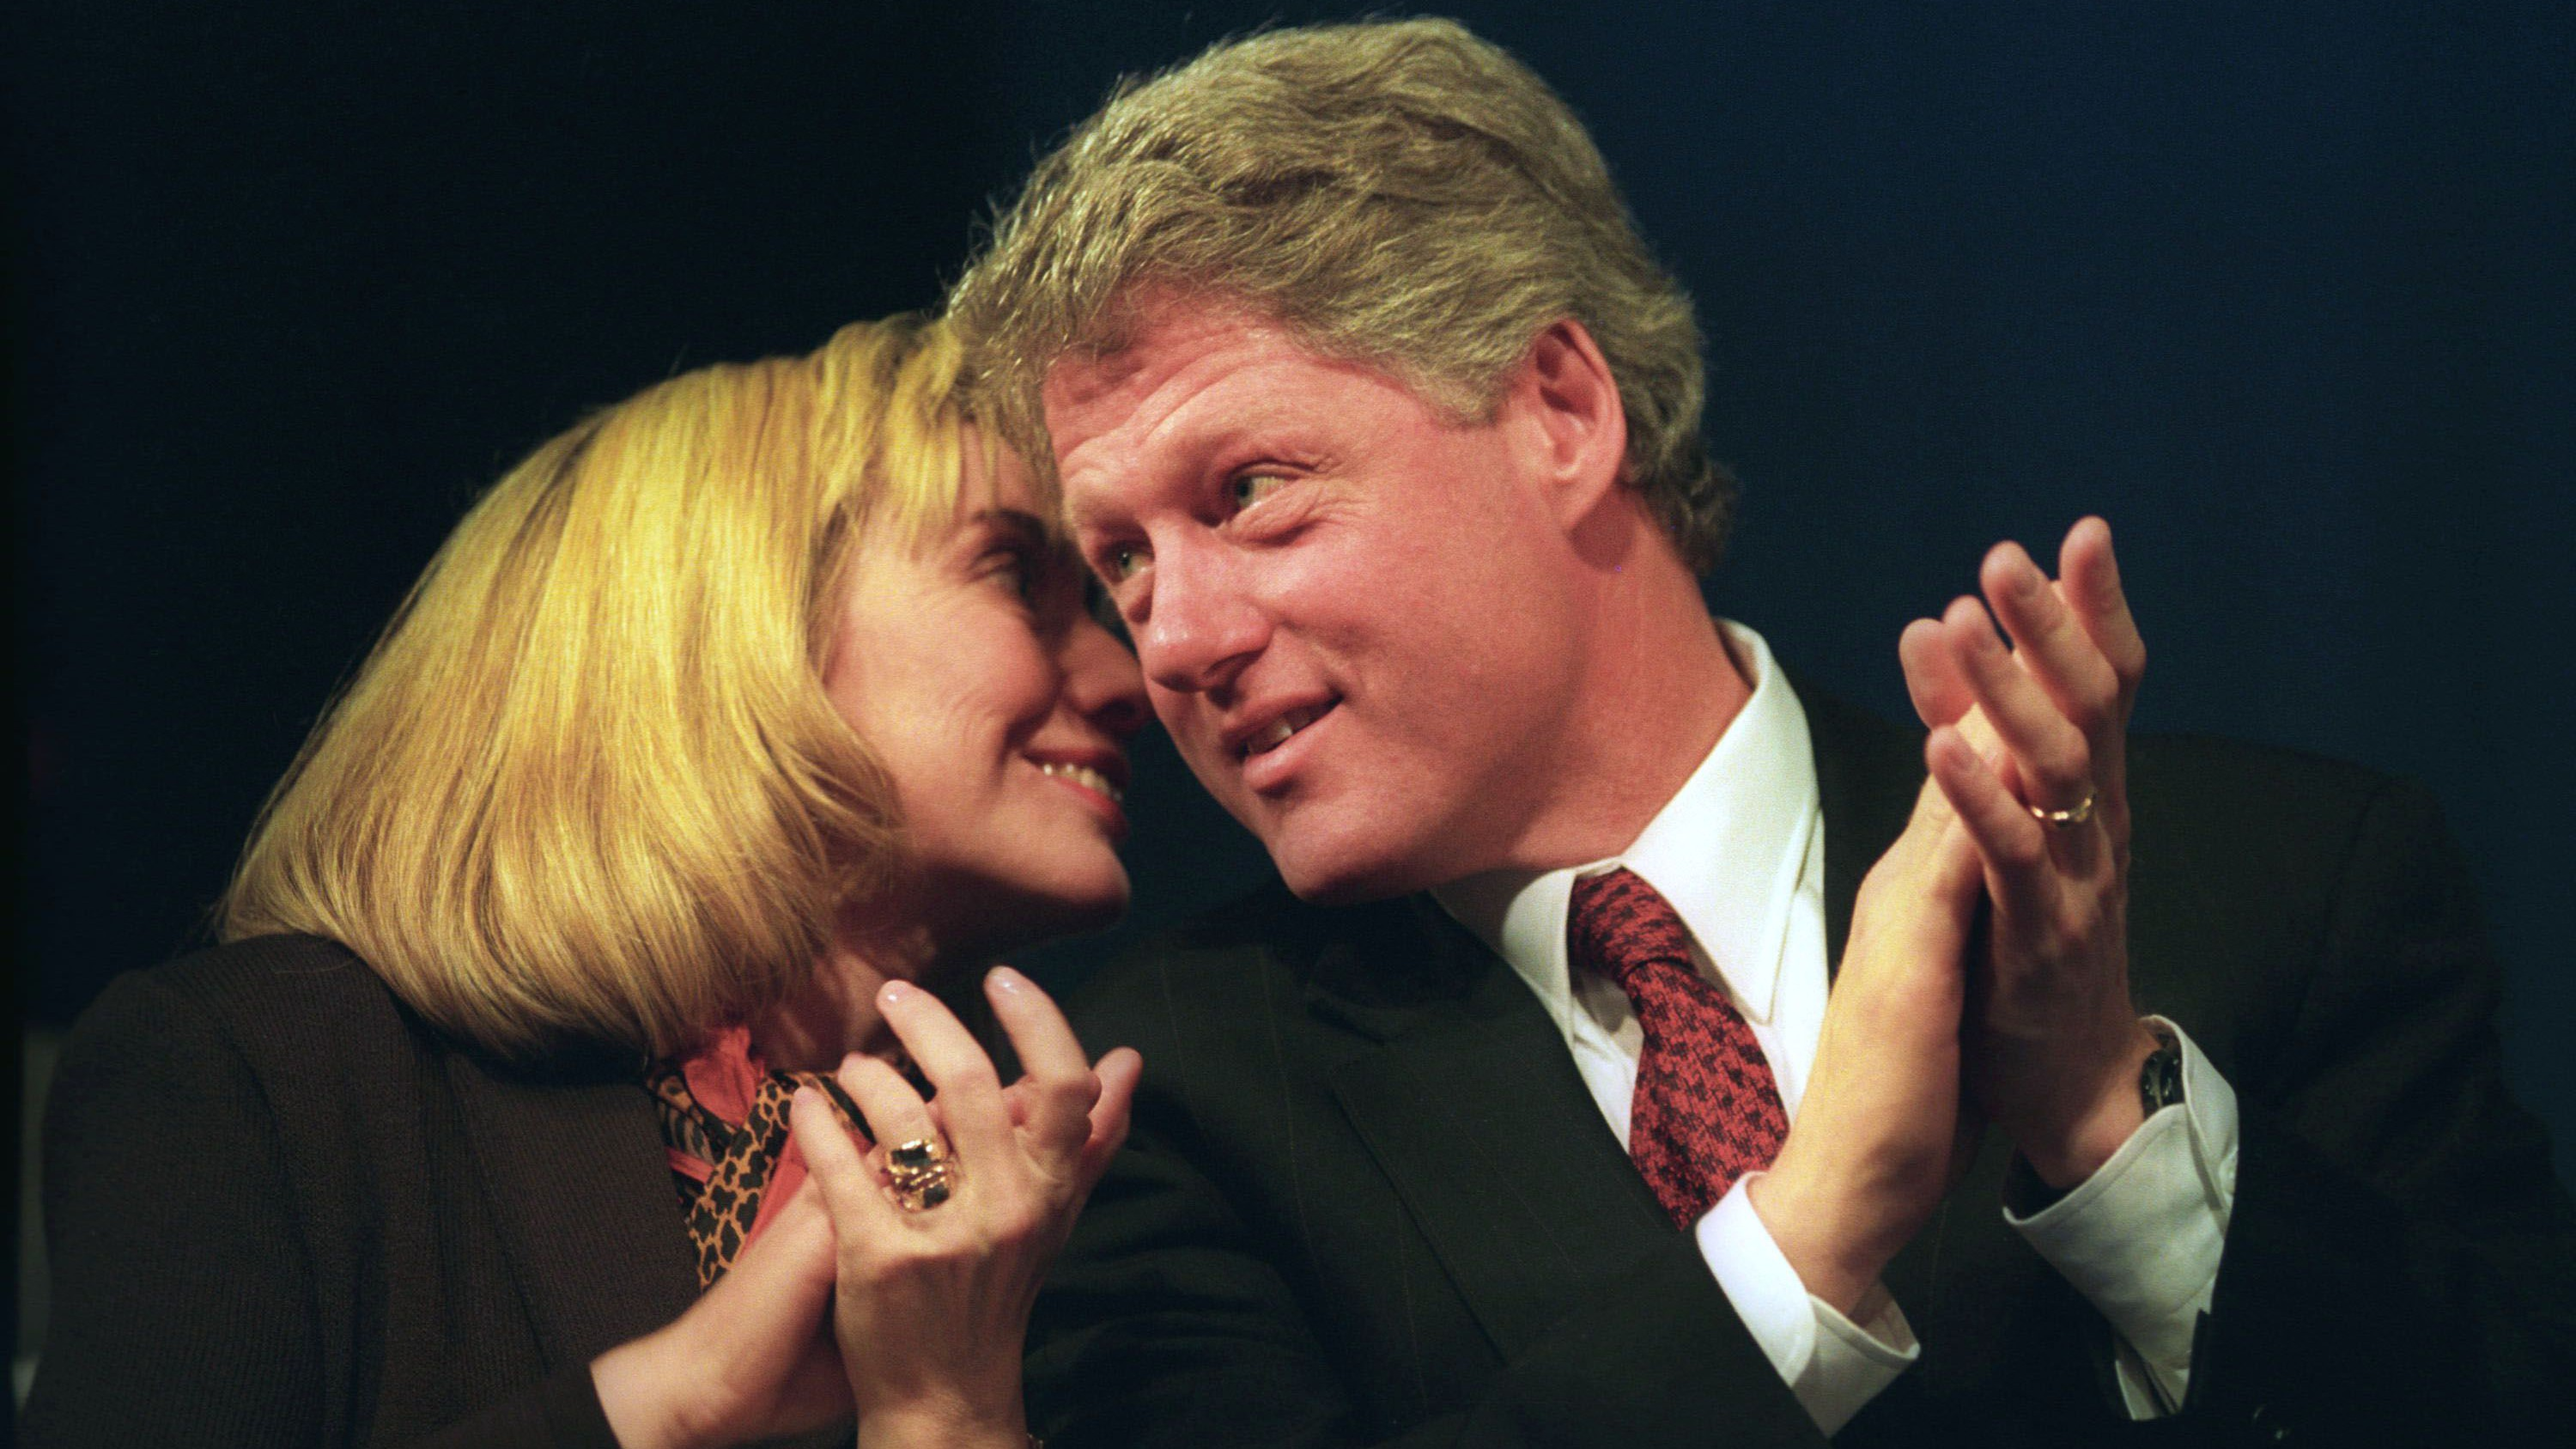 Hillary Clinton whispers to Bill Clinton during a campaign rally in 1993.